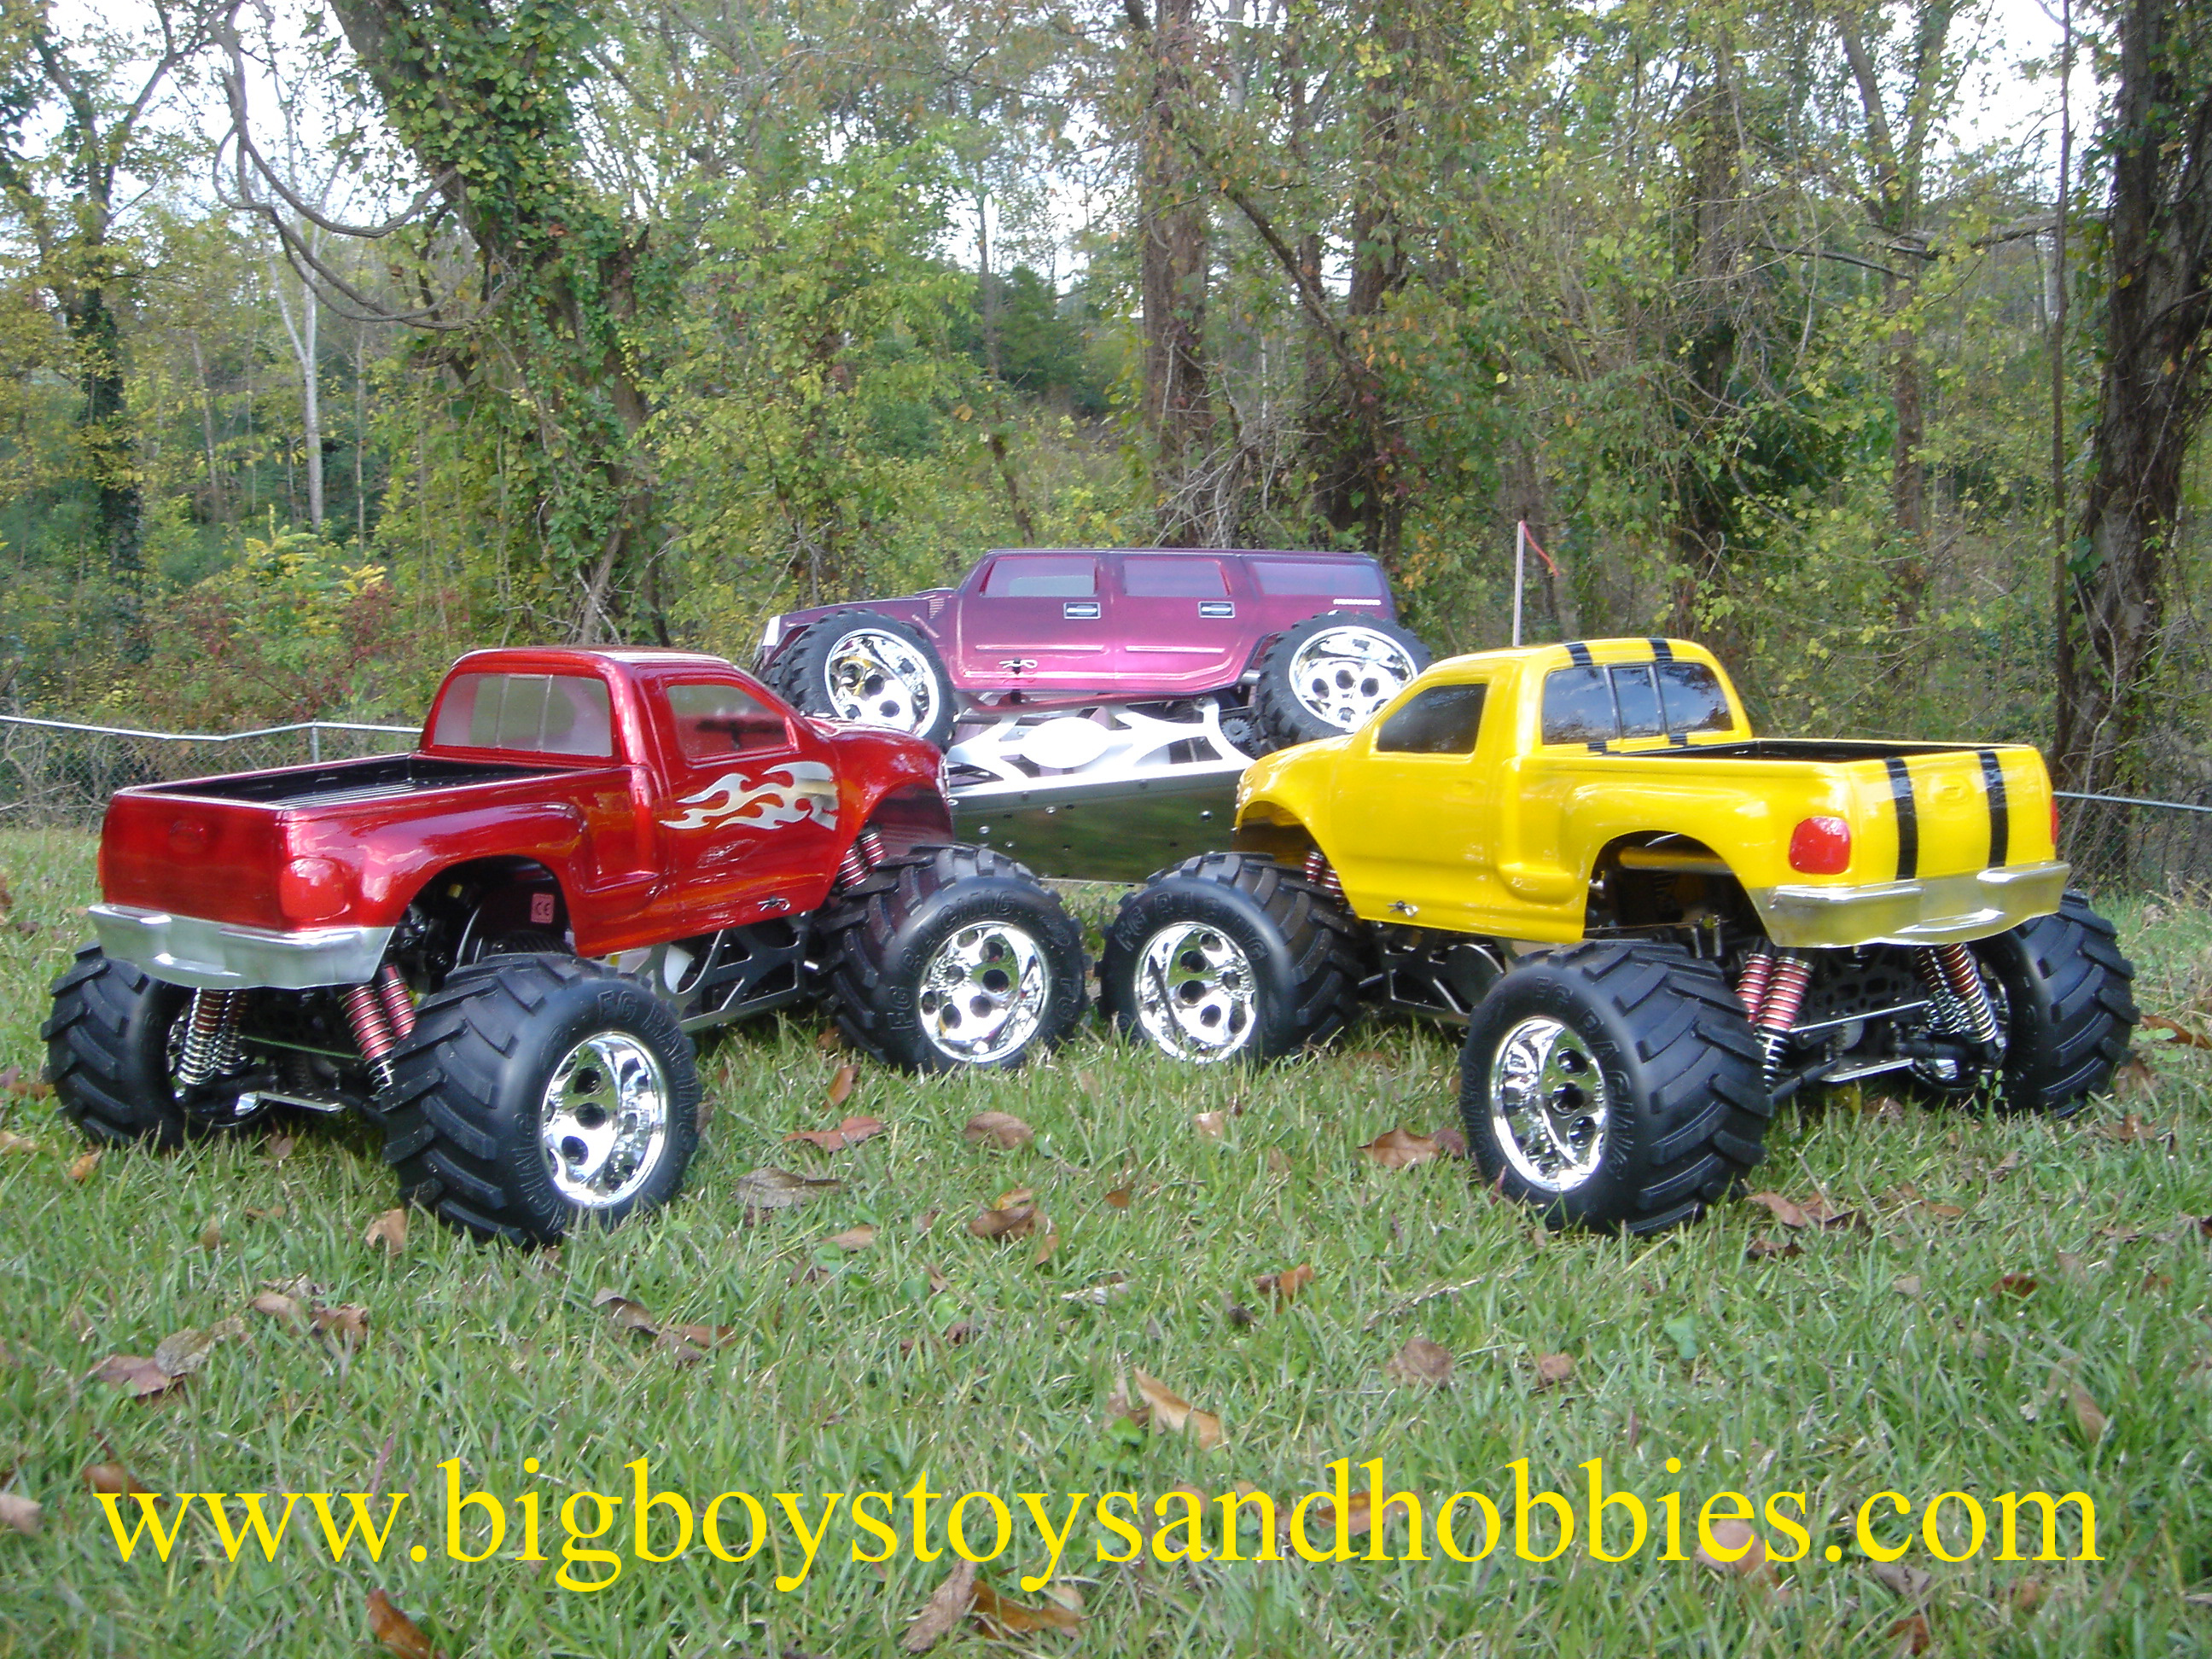 Big Boys Toys : Big boys toys and hobbies wallpaper